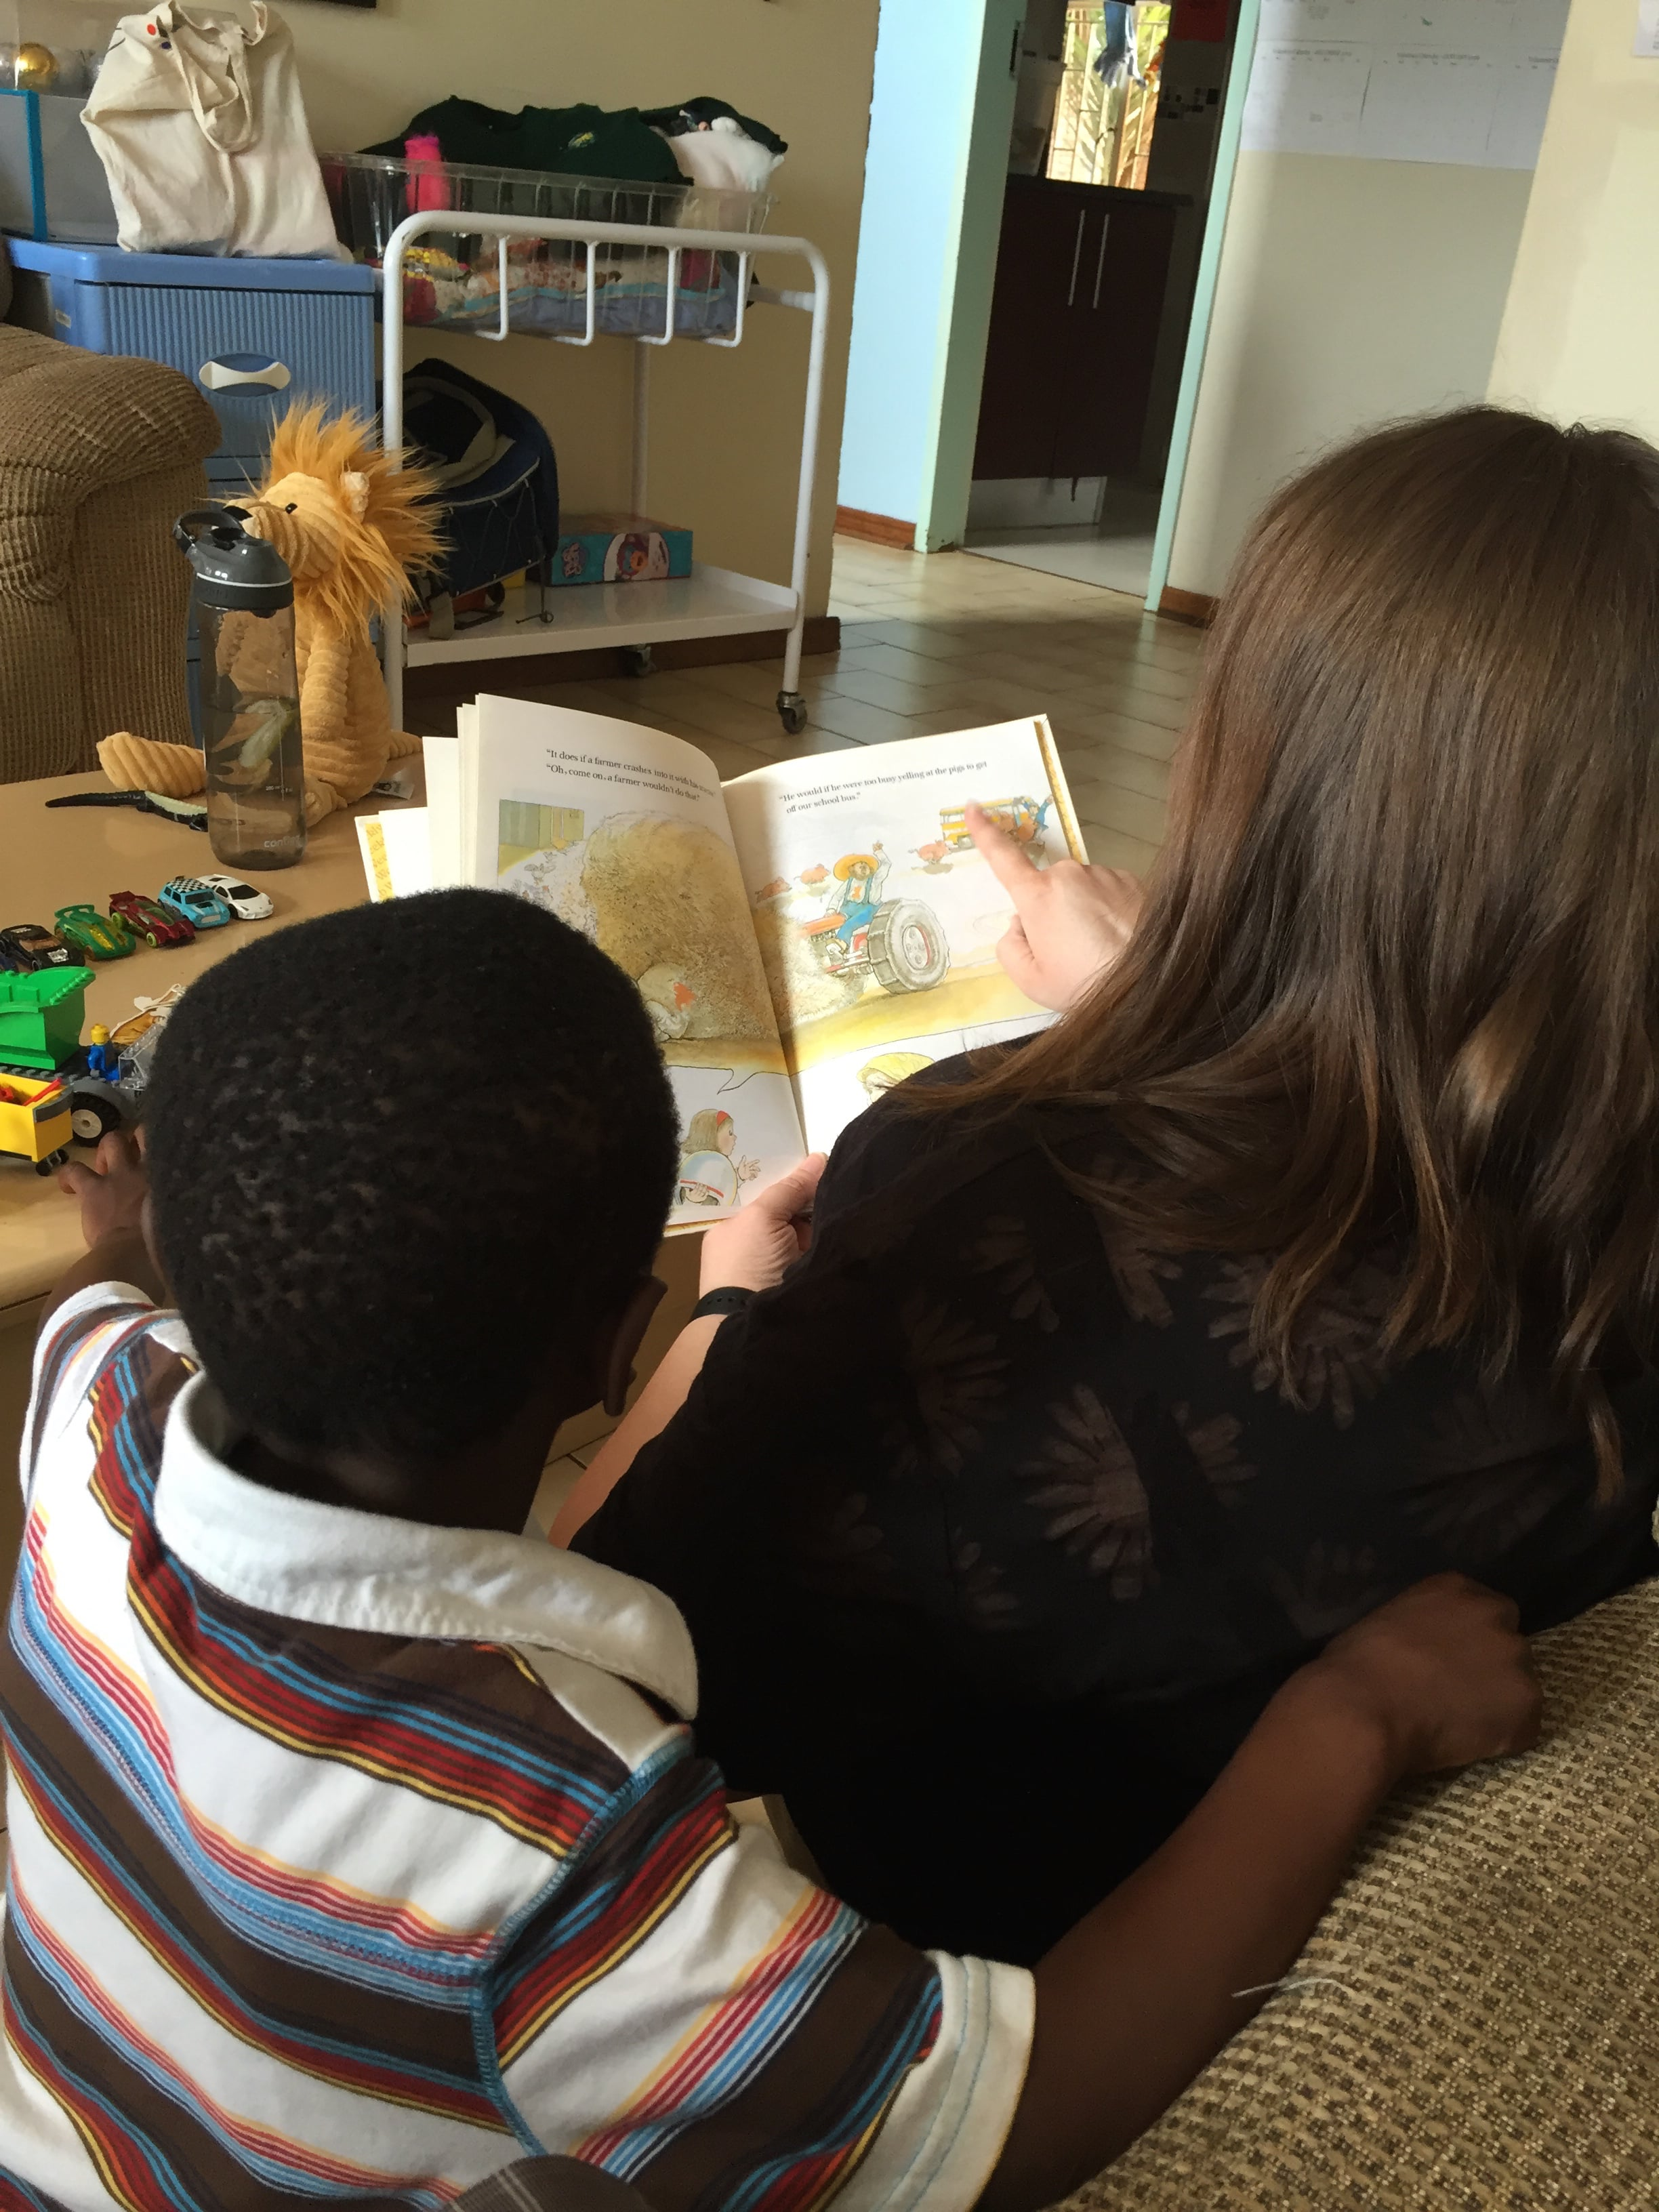 Story time together. I love this picture.